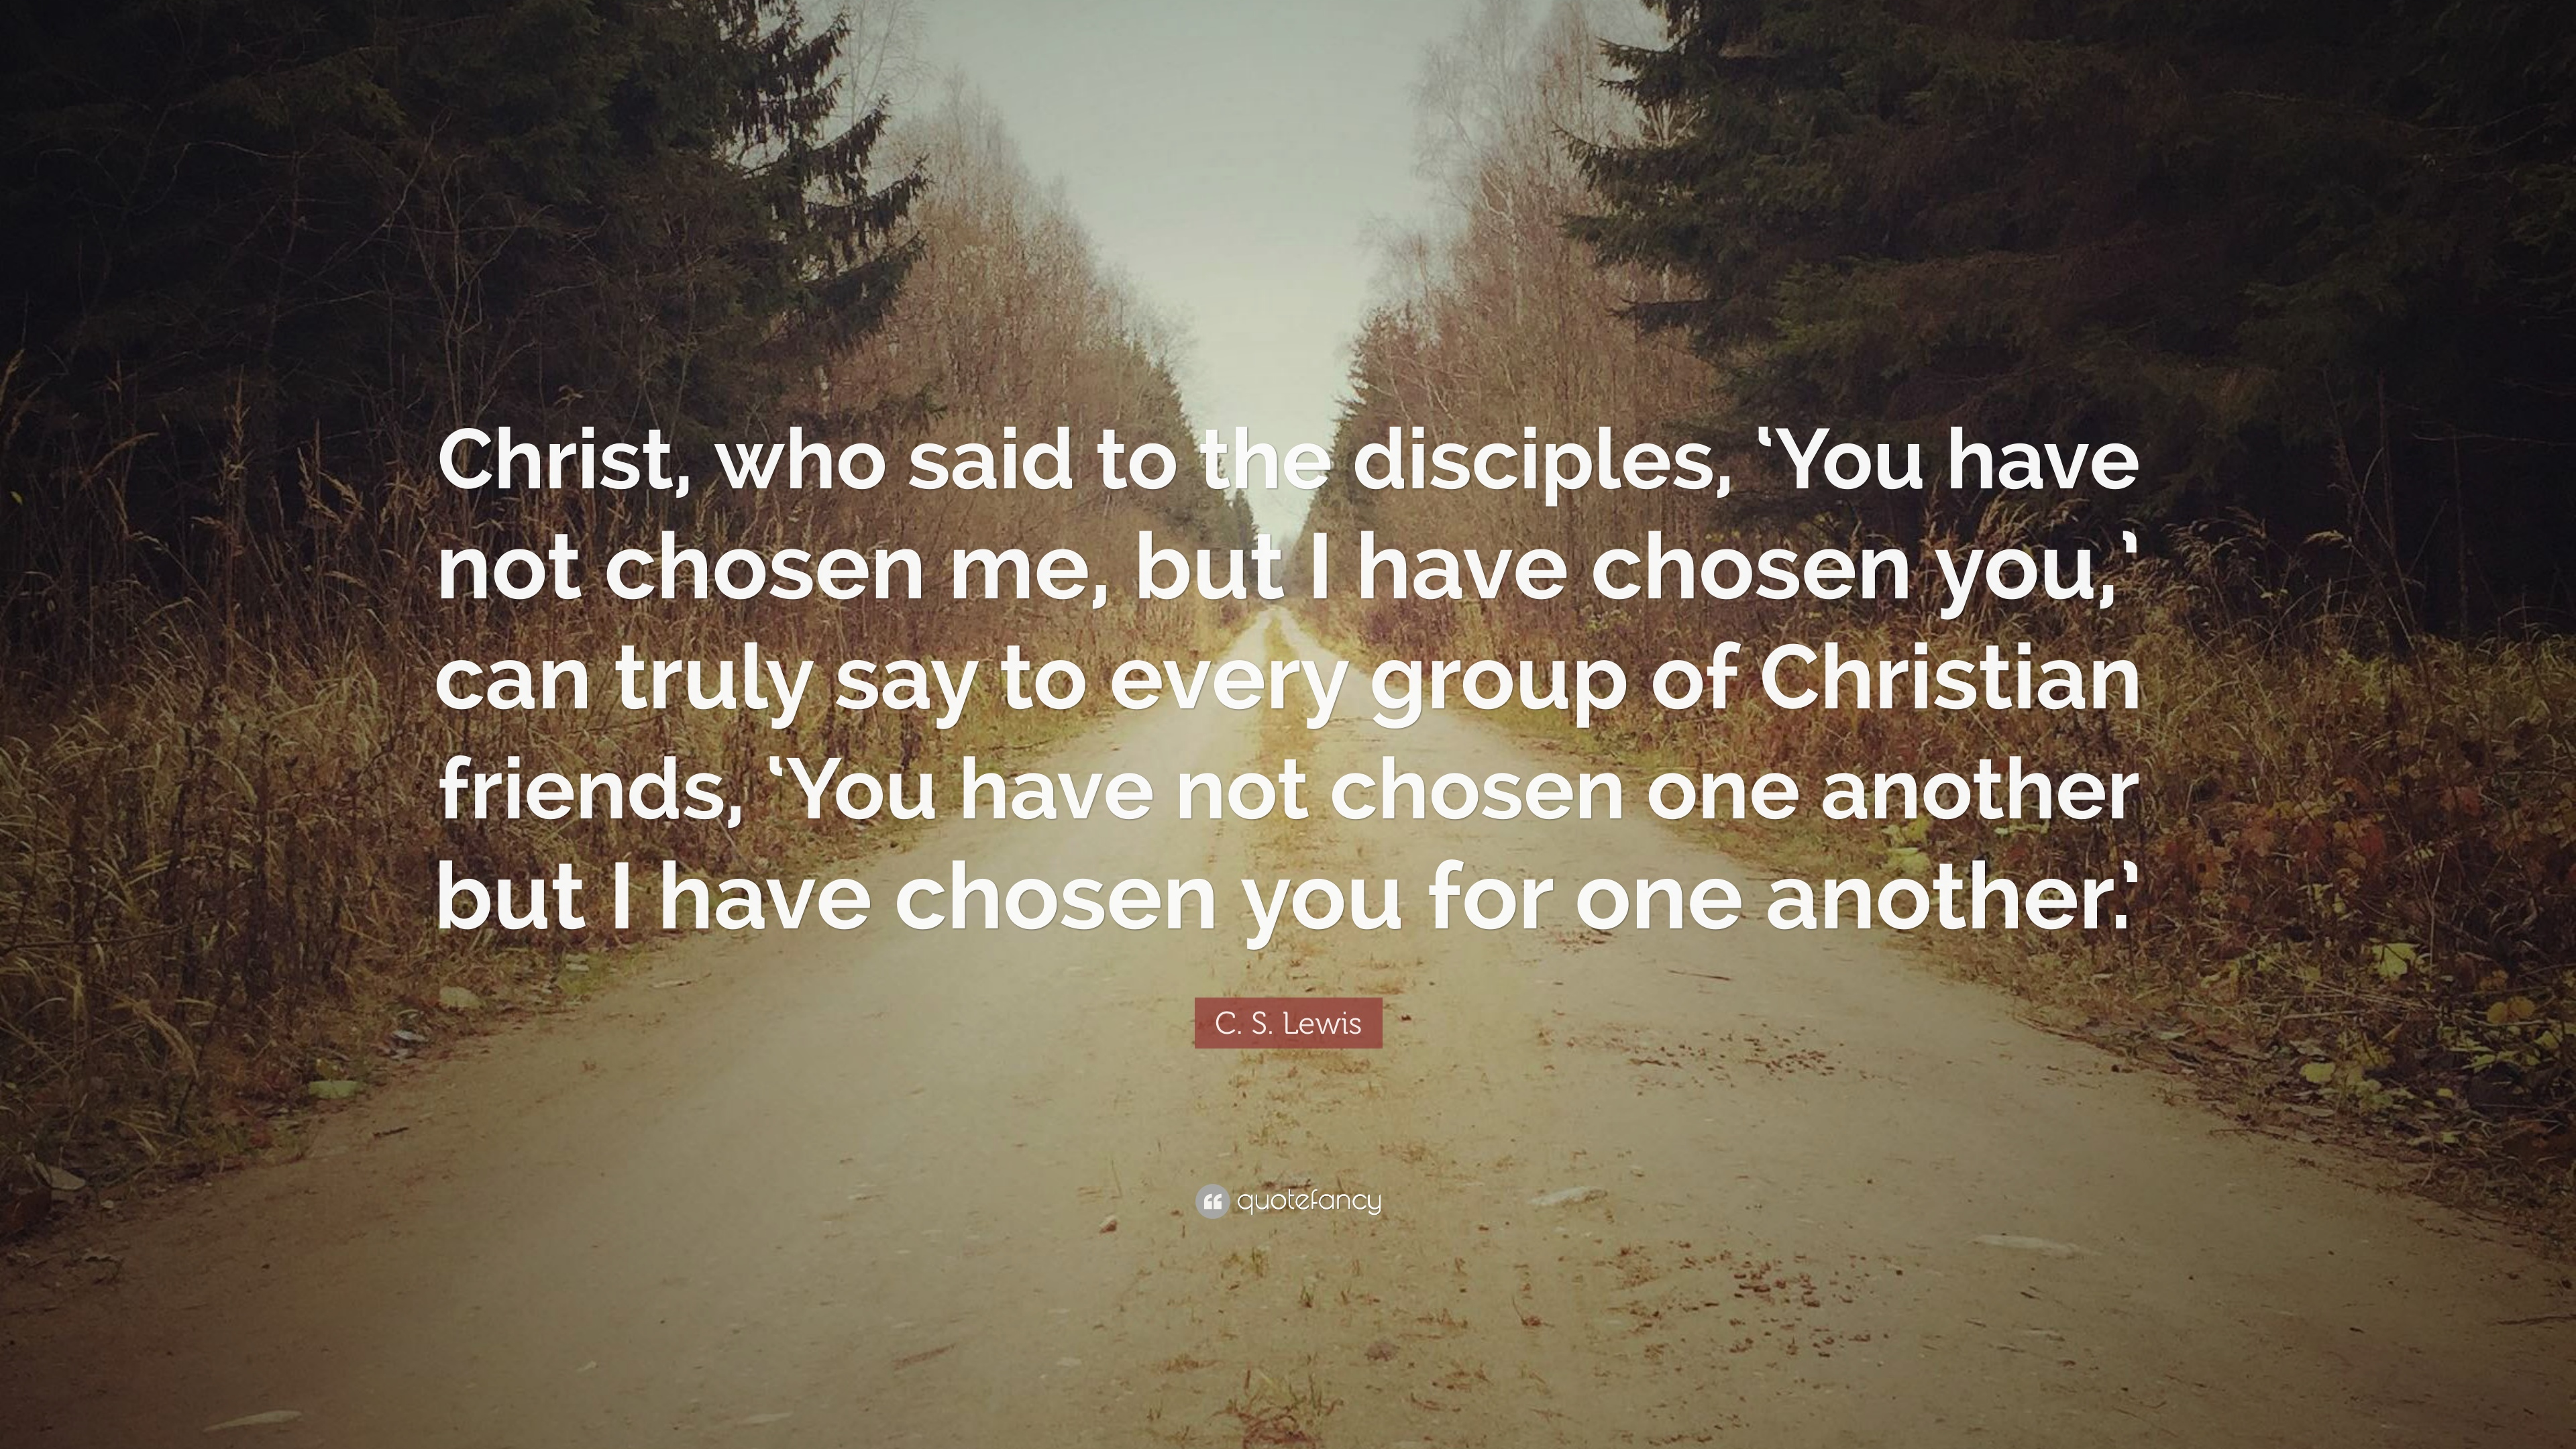 C s lewis quote christ who said to the disciples you have